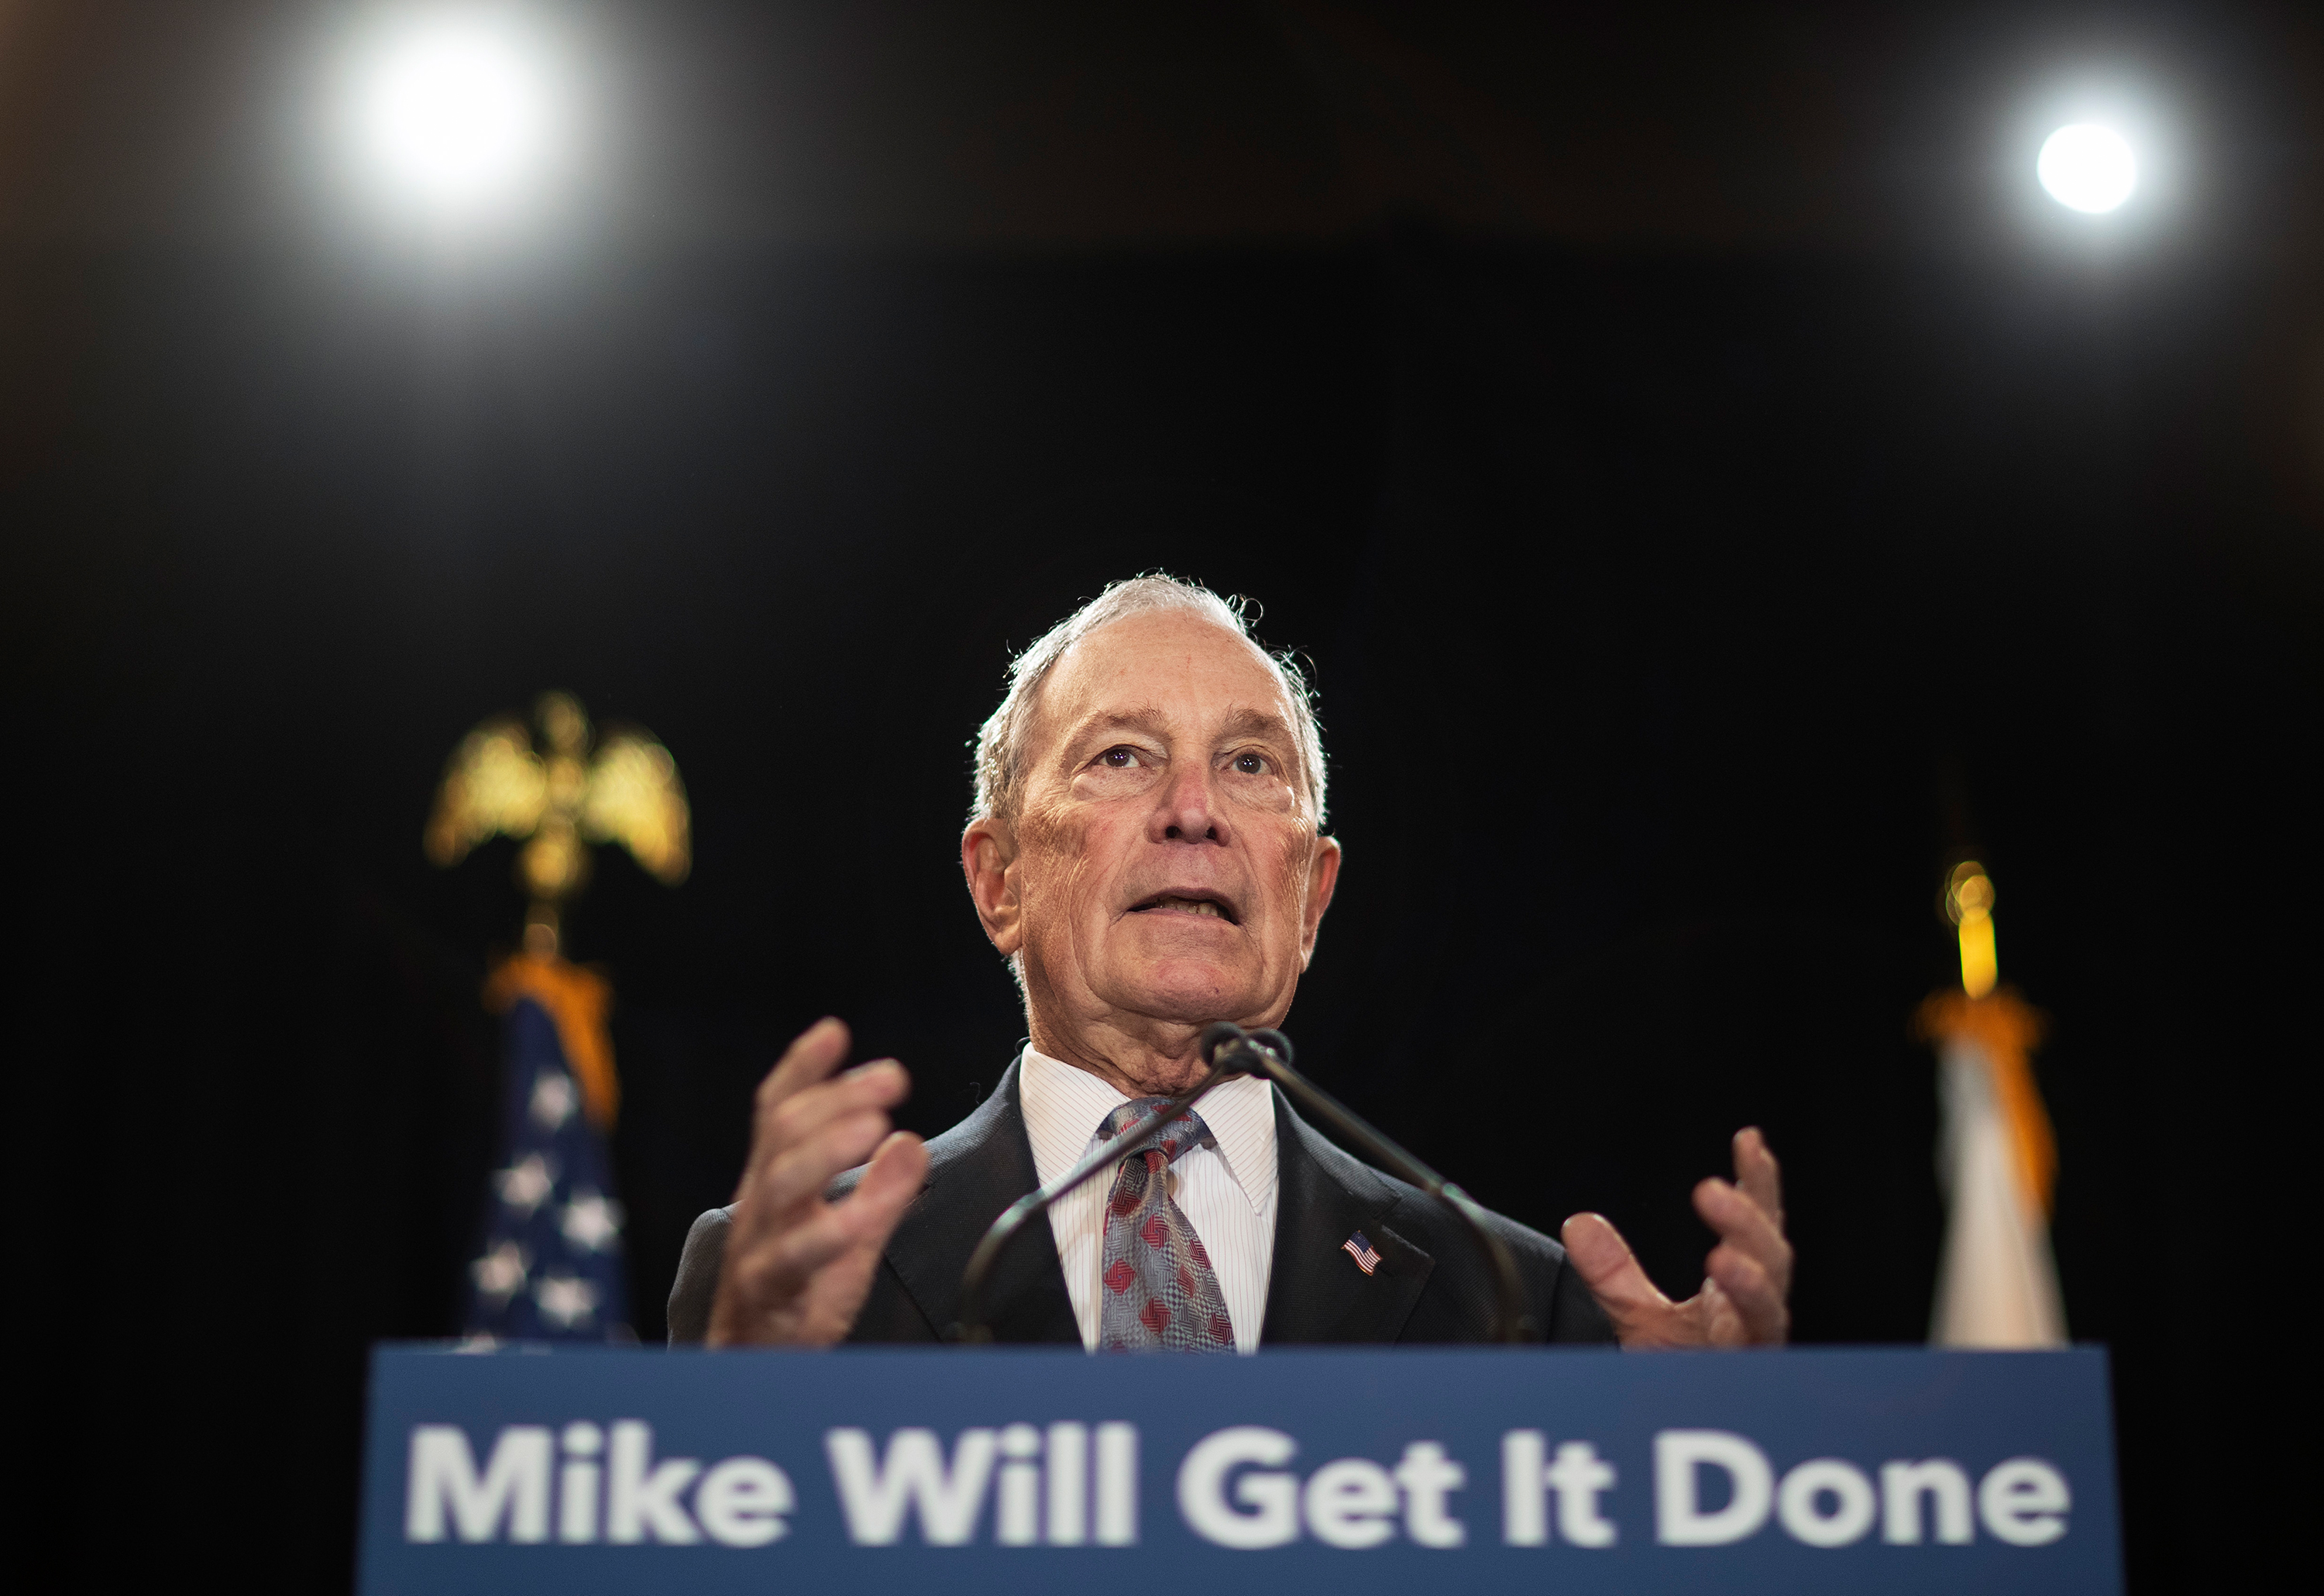 Democratic candidates zero in on Bloomberg as former mayor rises in the polls